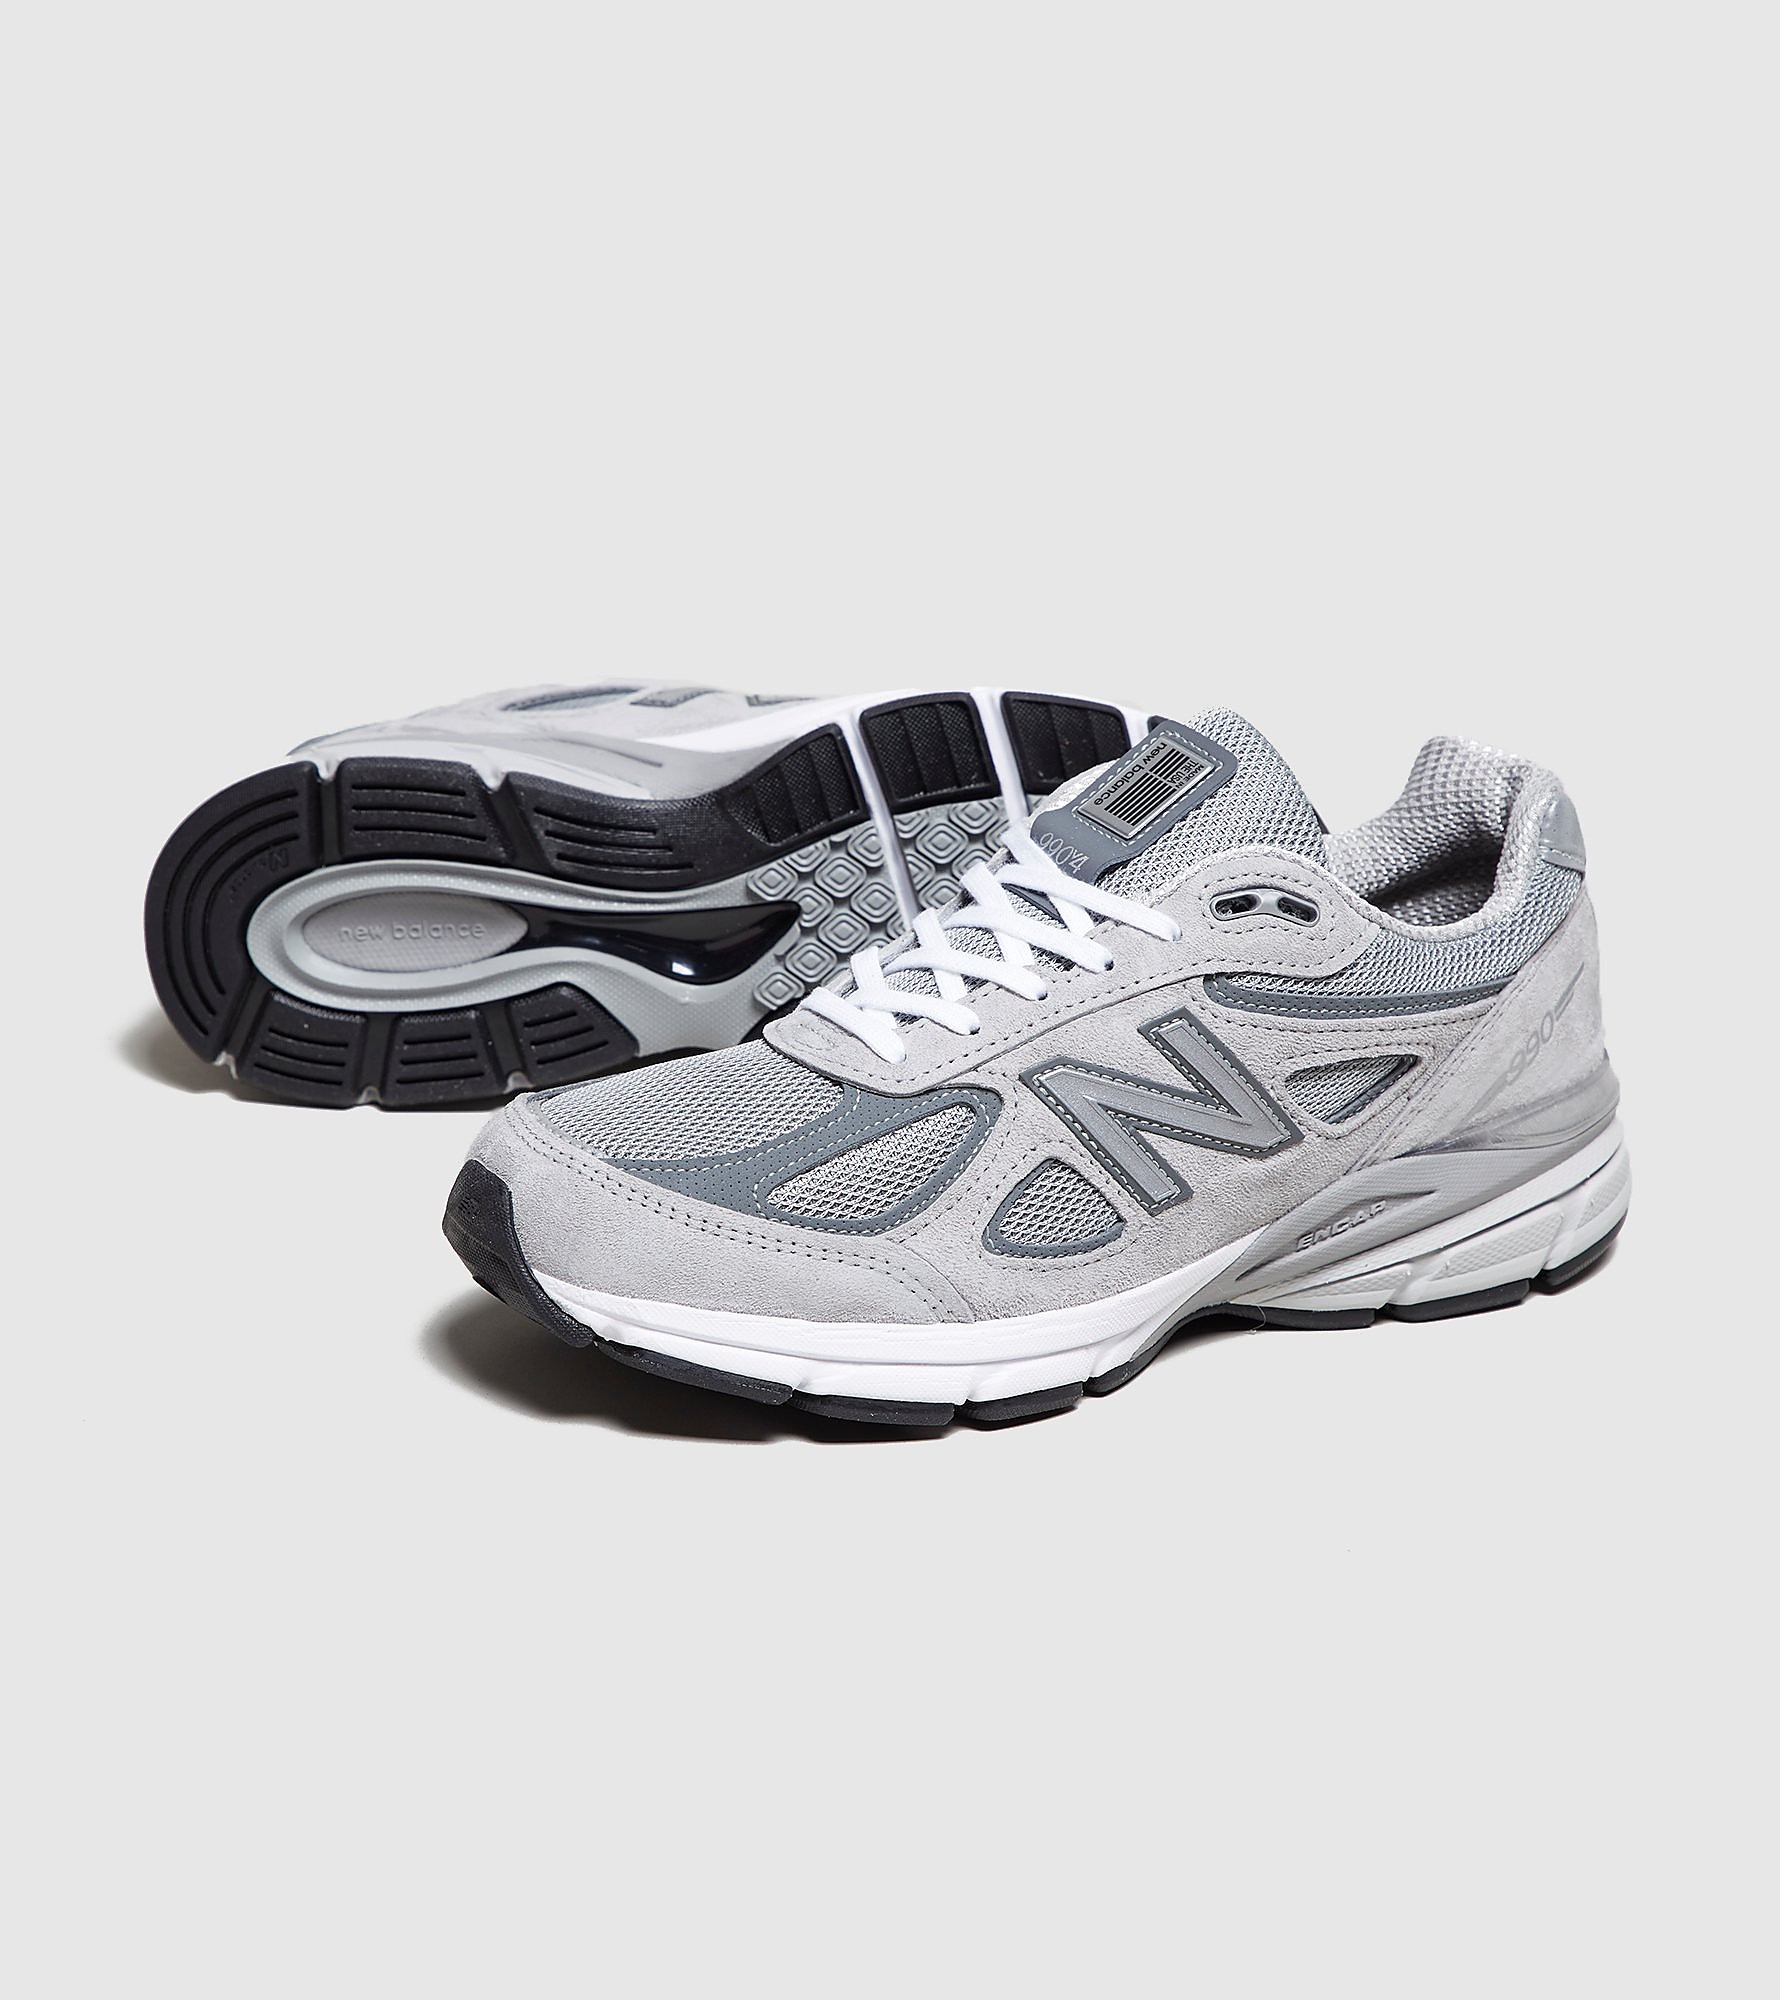 New Balance 990 - Made in the USA